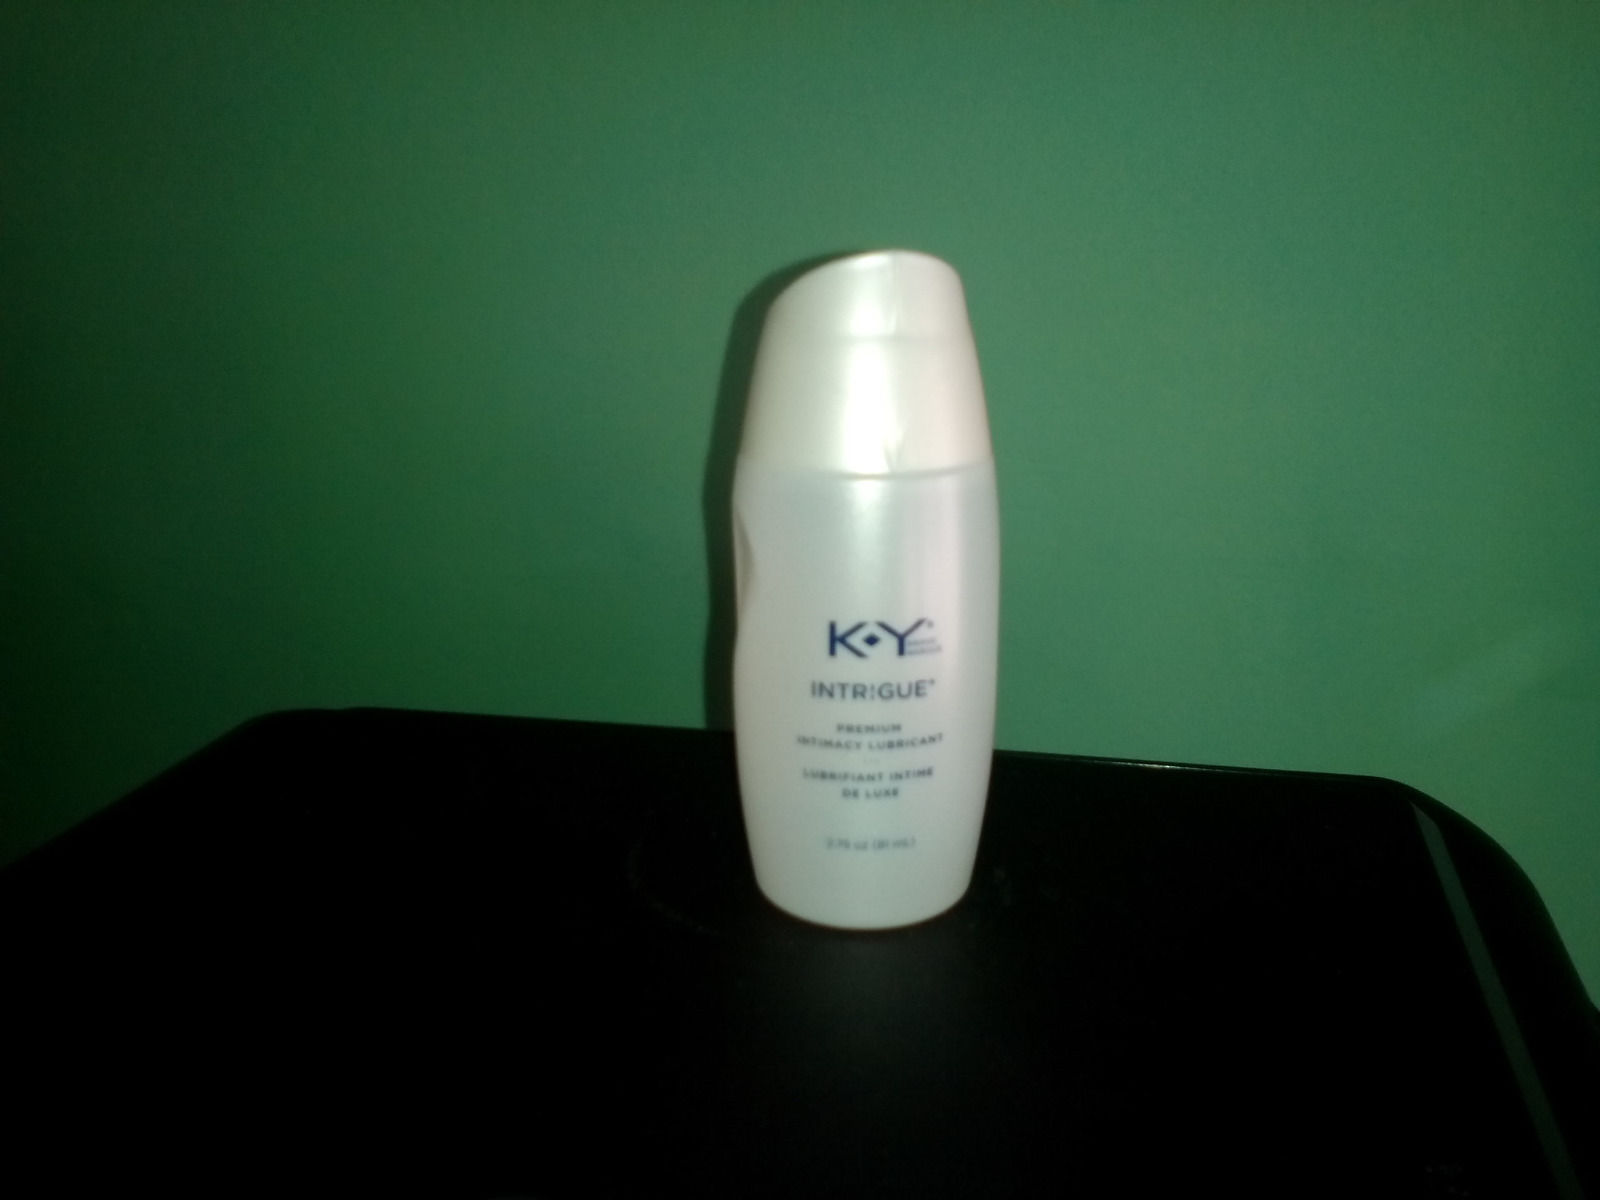 ky intrigue lubricant 2 listings ky intrigue lubricant 2 listings